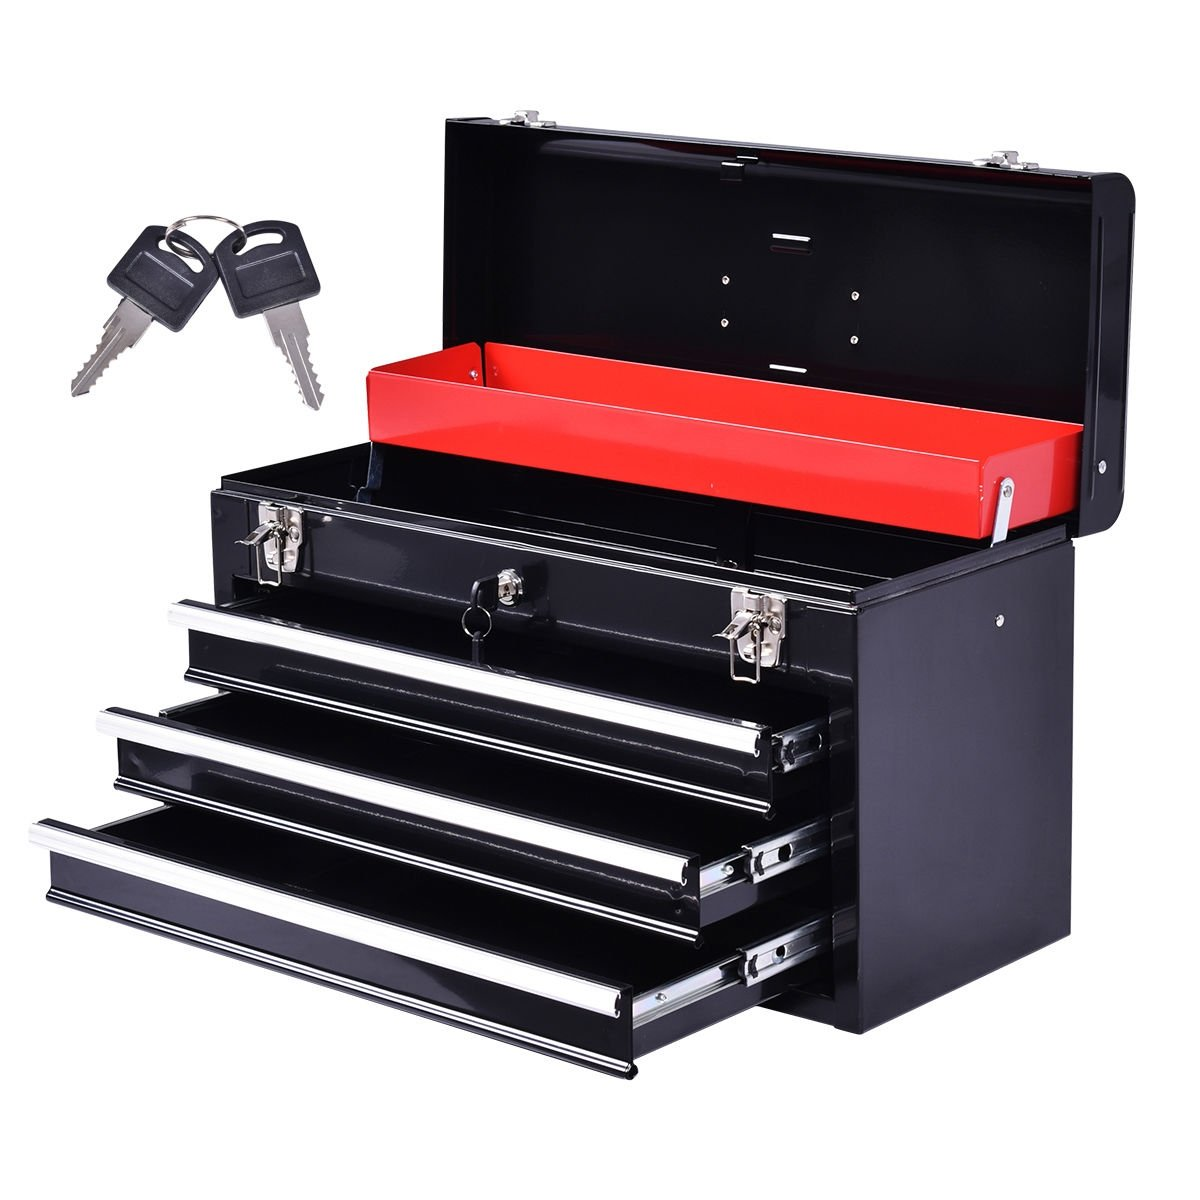 Tool Box Organizer with Drawers by DTOFREE